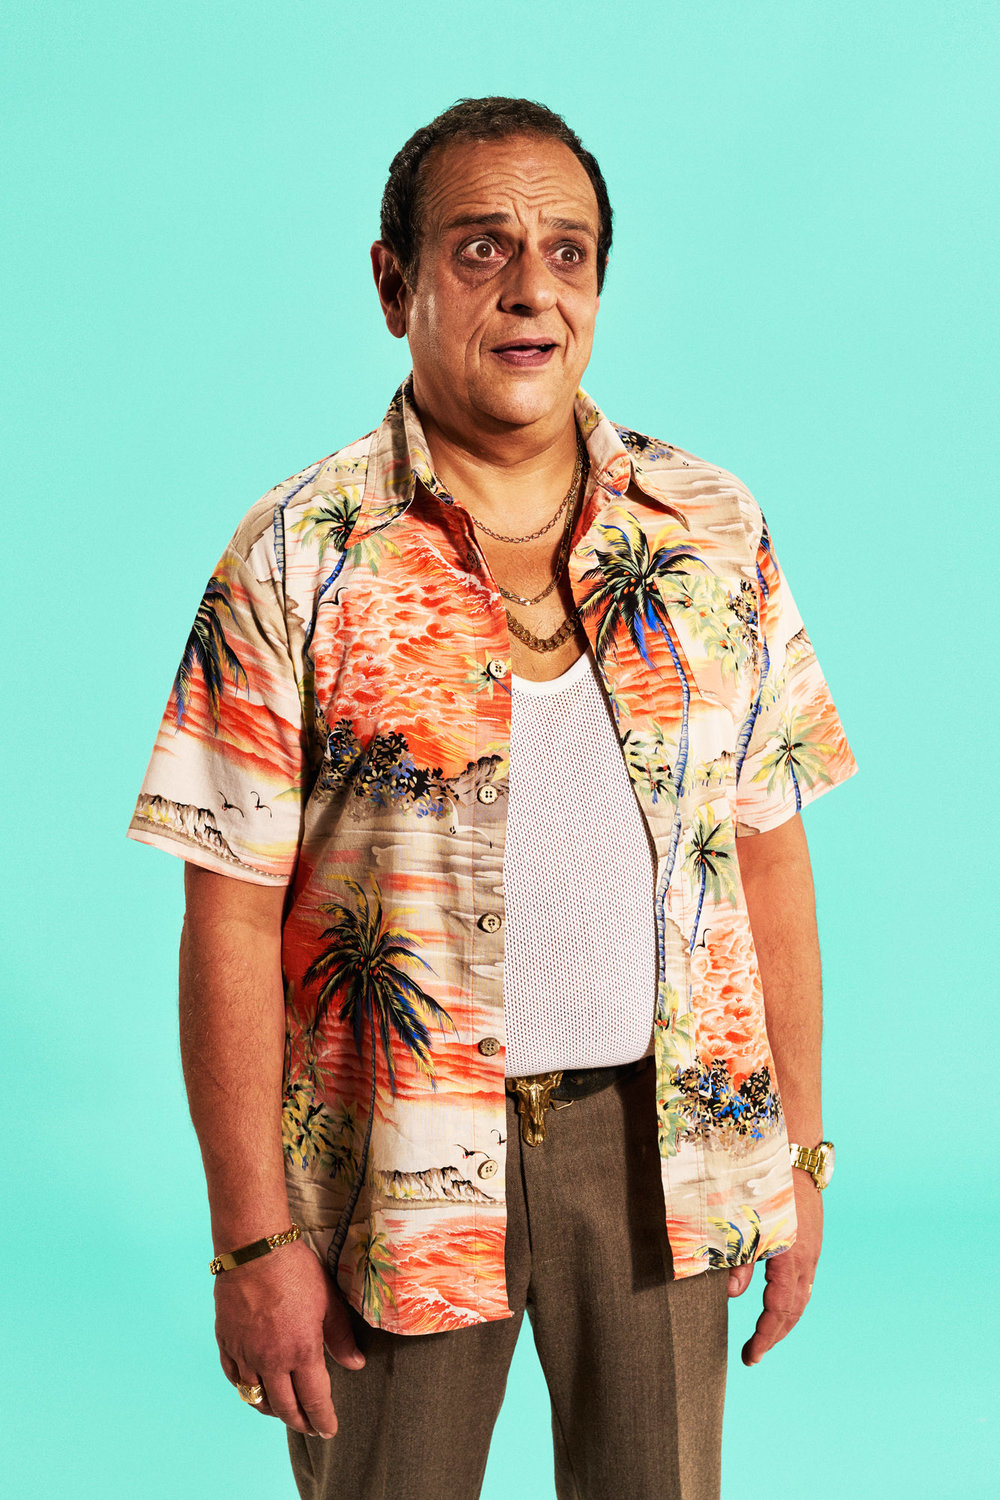 Joe Giacomet - Man in Hawaiian shirt